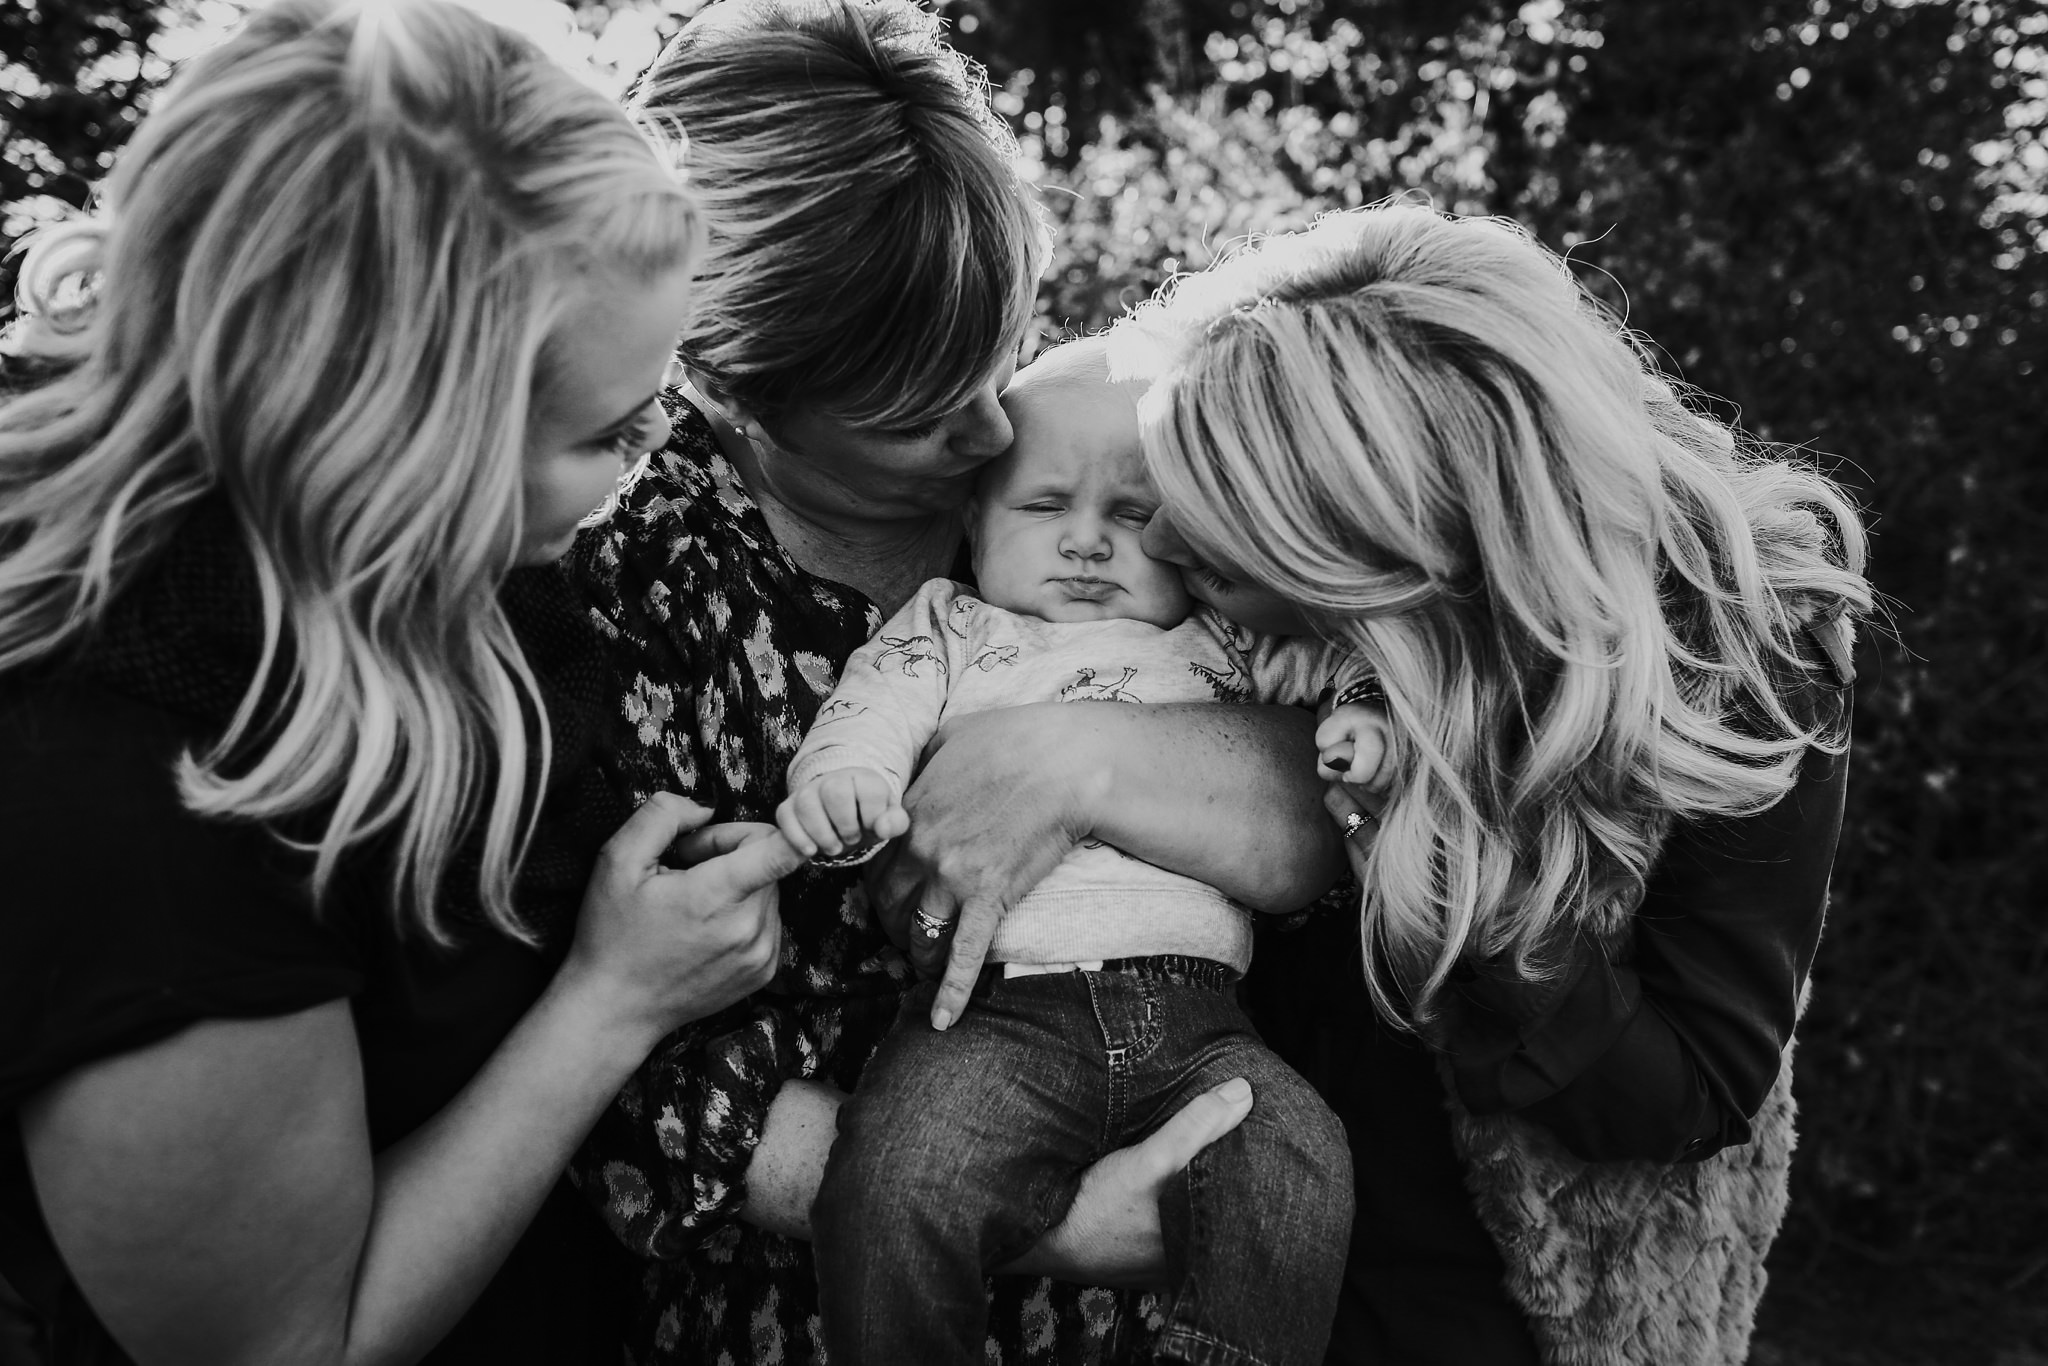 Whidbey-Island-Family-Photographer-Kara-Chappell-Photography_1371.jpg